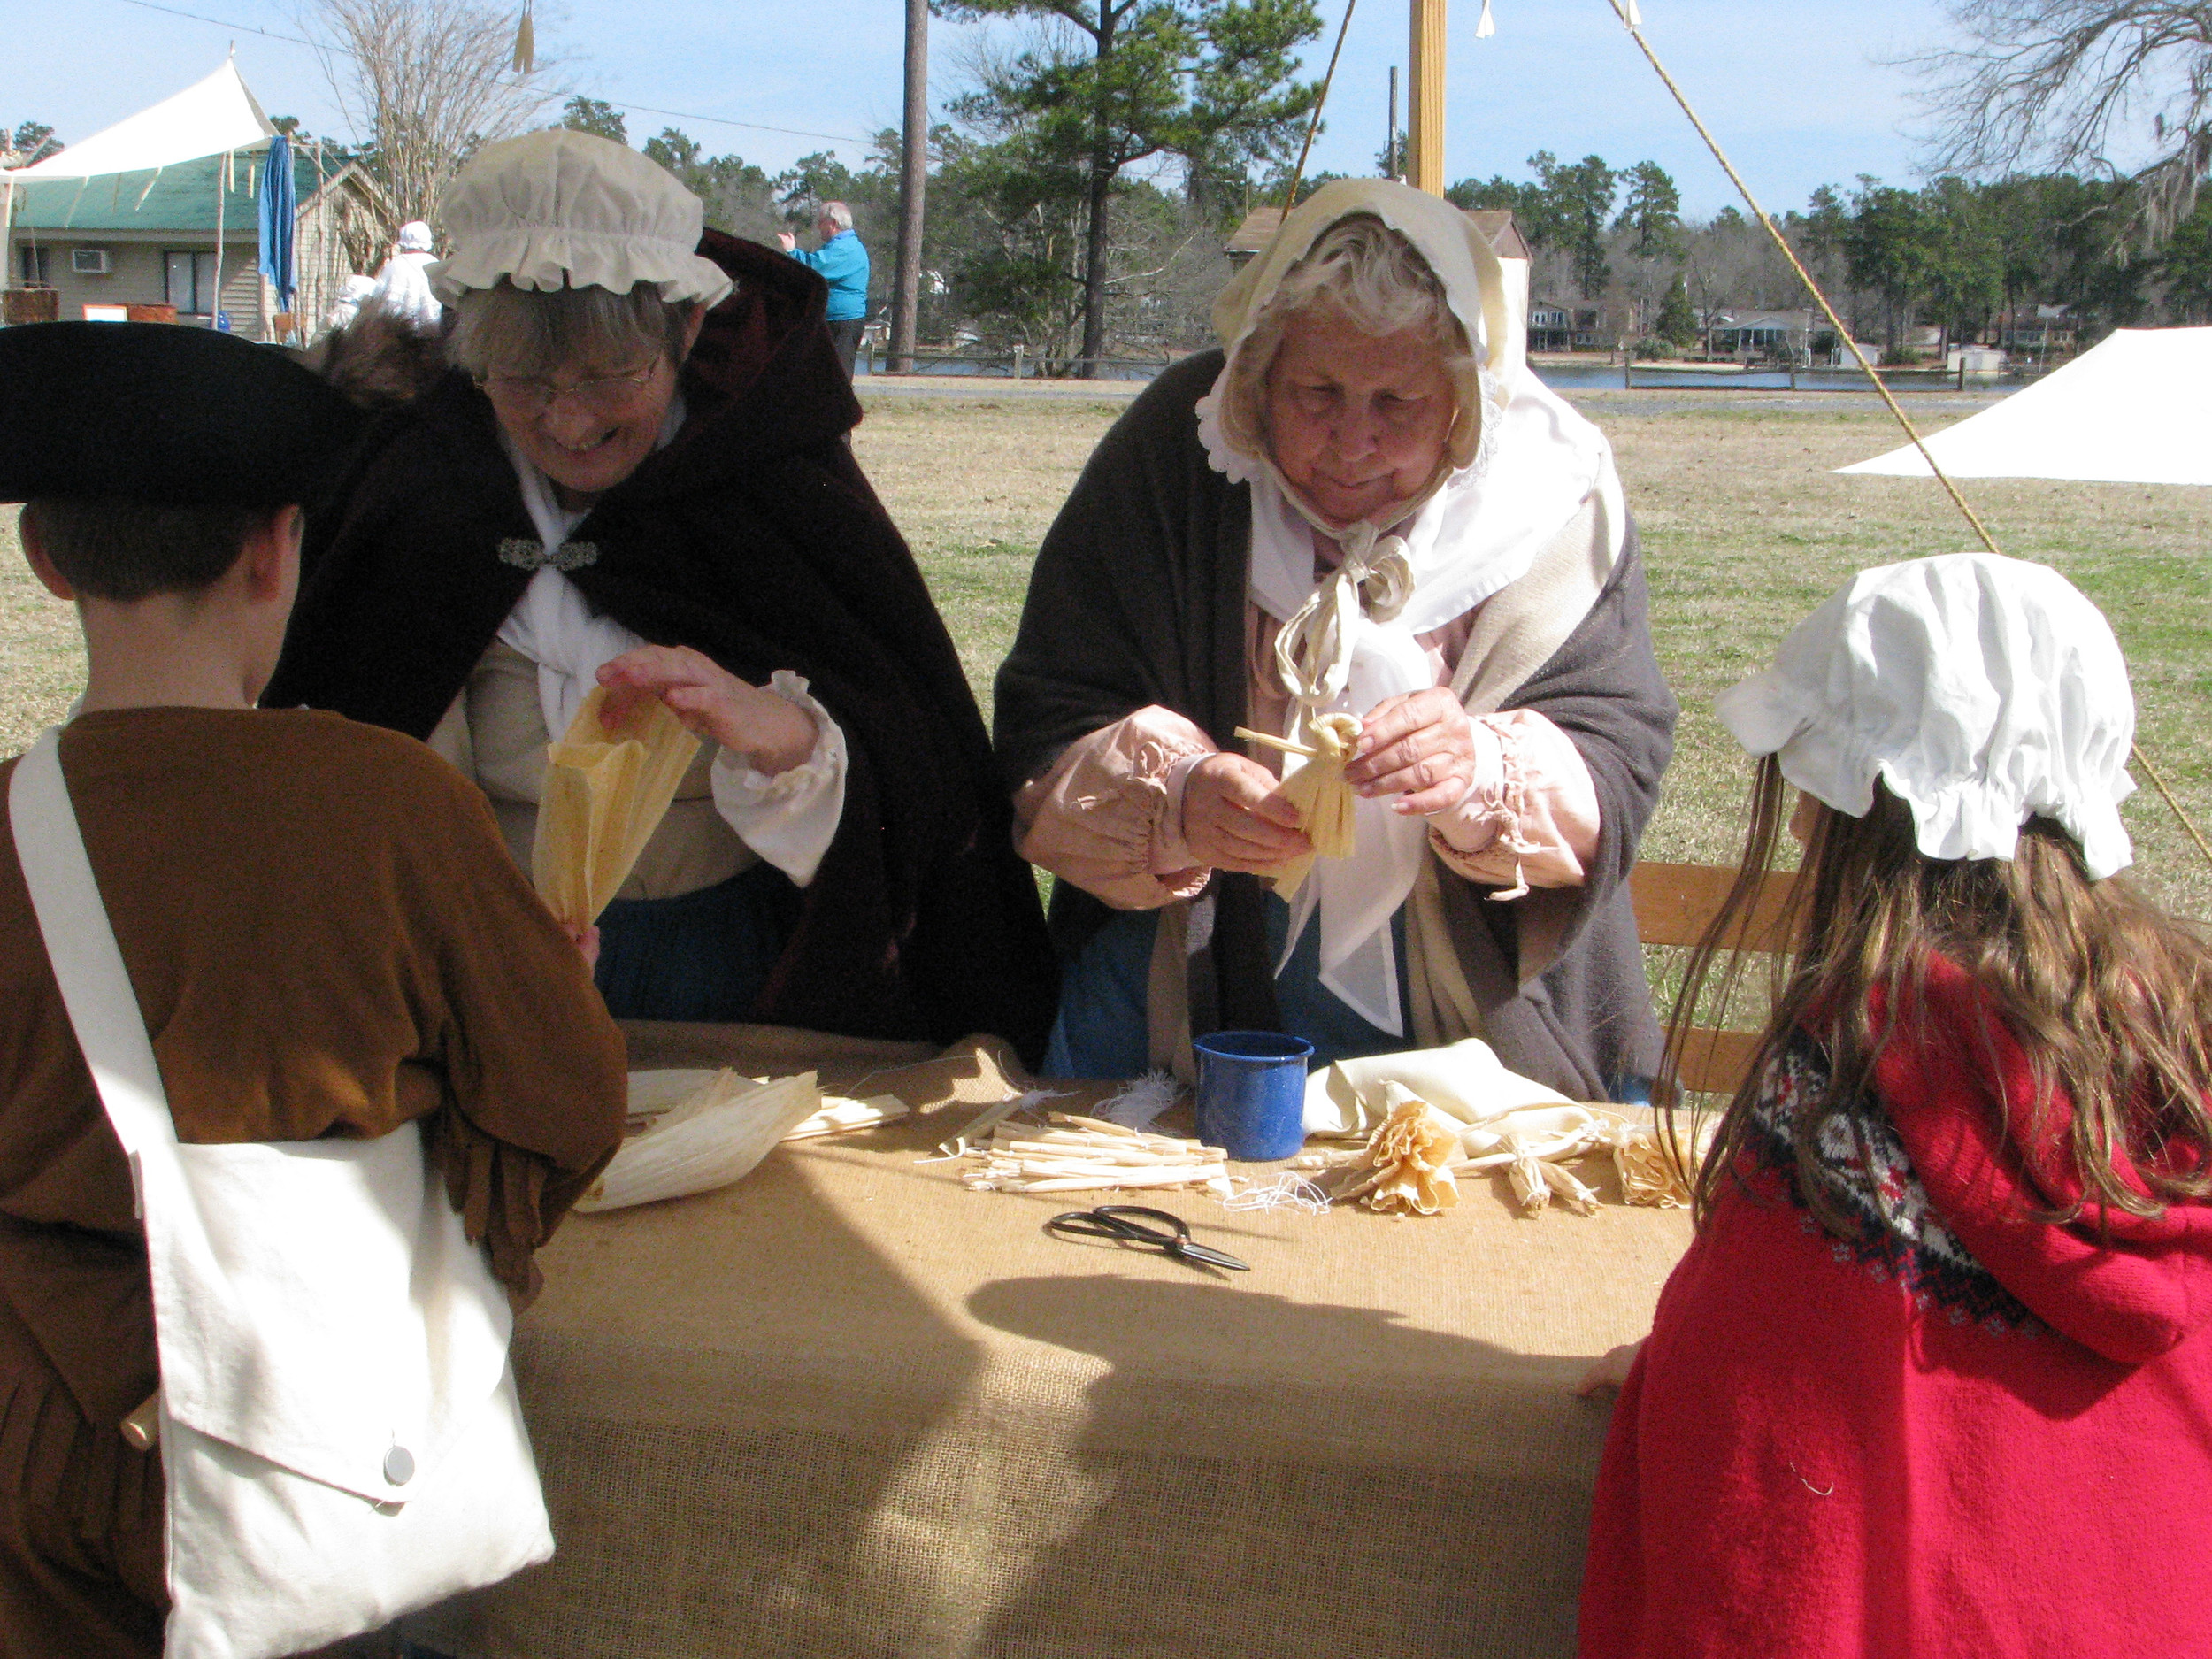 PHOTO PROVIDED  Pat Paul, left, and June Brailsford make corn husk dolls with children at last year's Francis Marion Living History Days. This year's event will be held at Camp Bob Cooper in Summerton on Feb. 27-28.